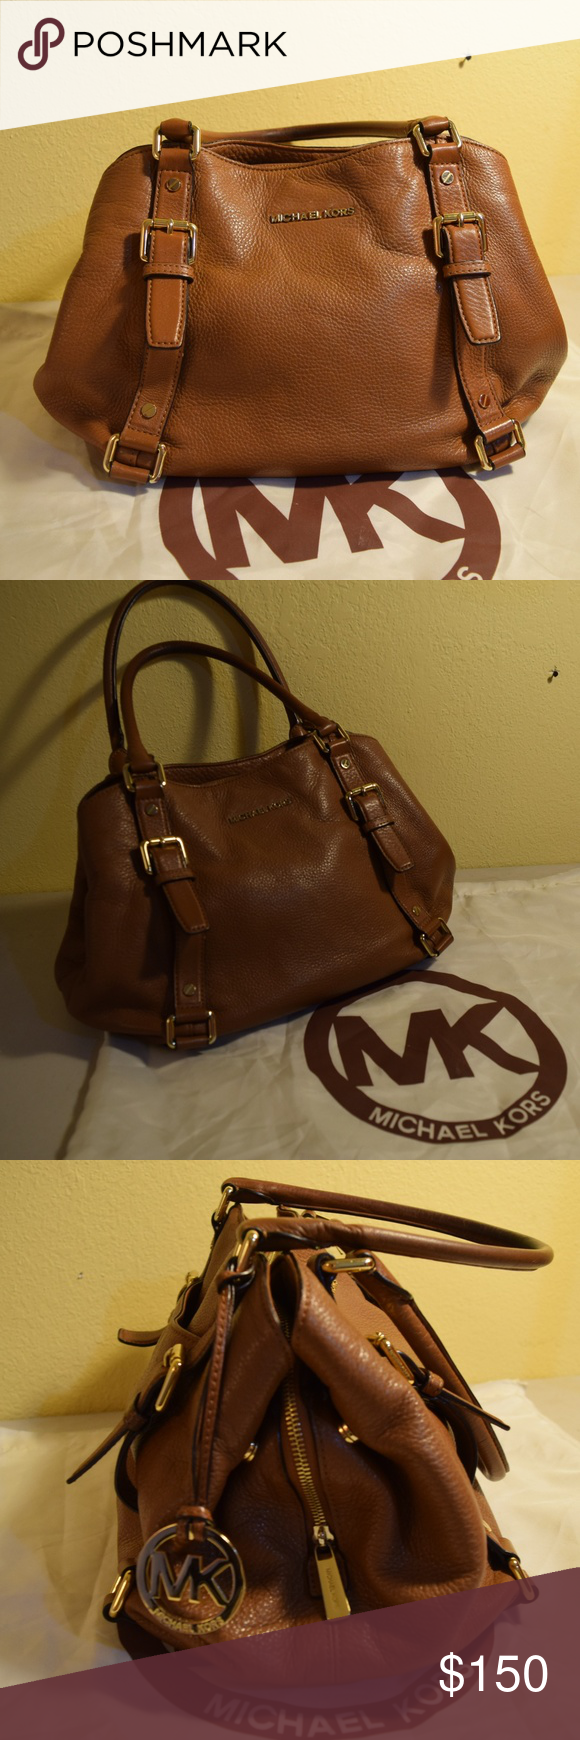 Michael Kors Medium Satchel Acorn Camel Sized Small Authentic In Gold Hardware Duster Bag Included